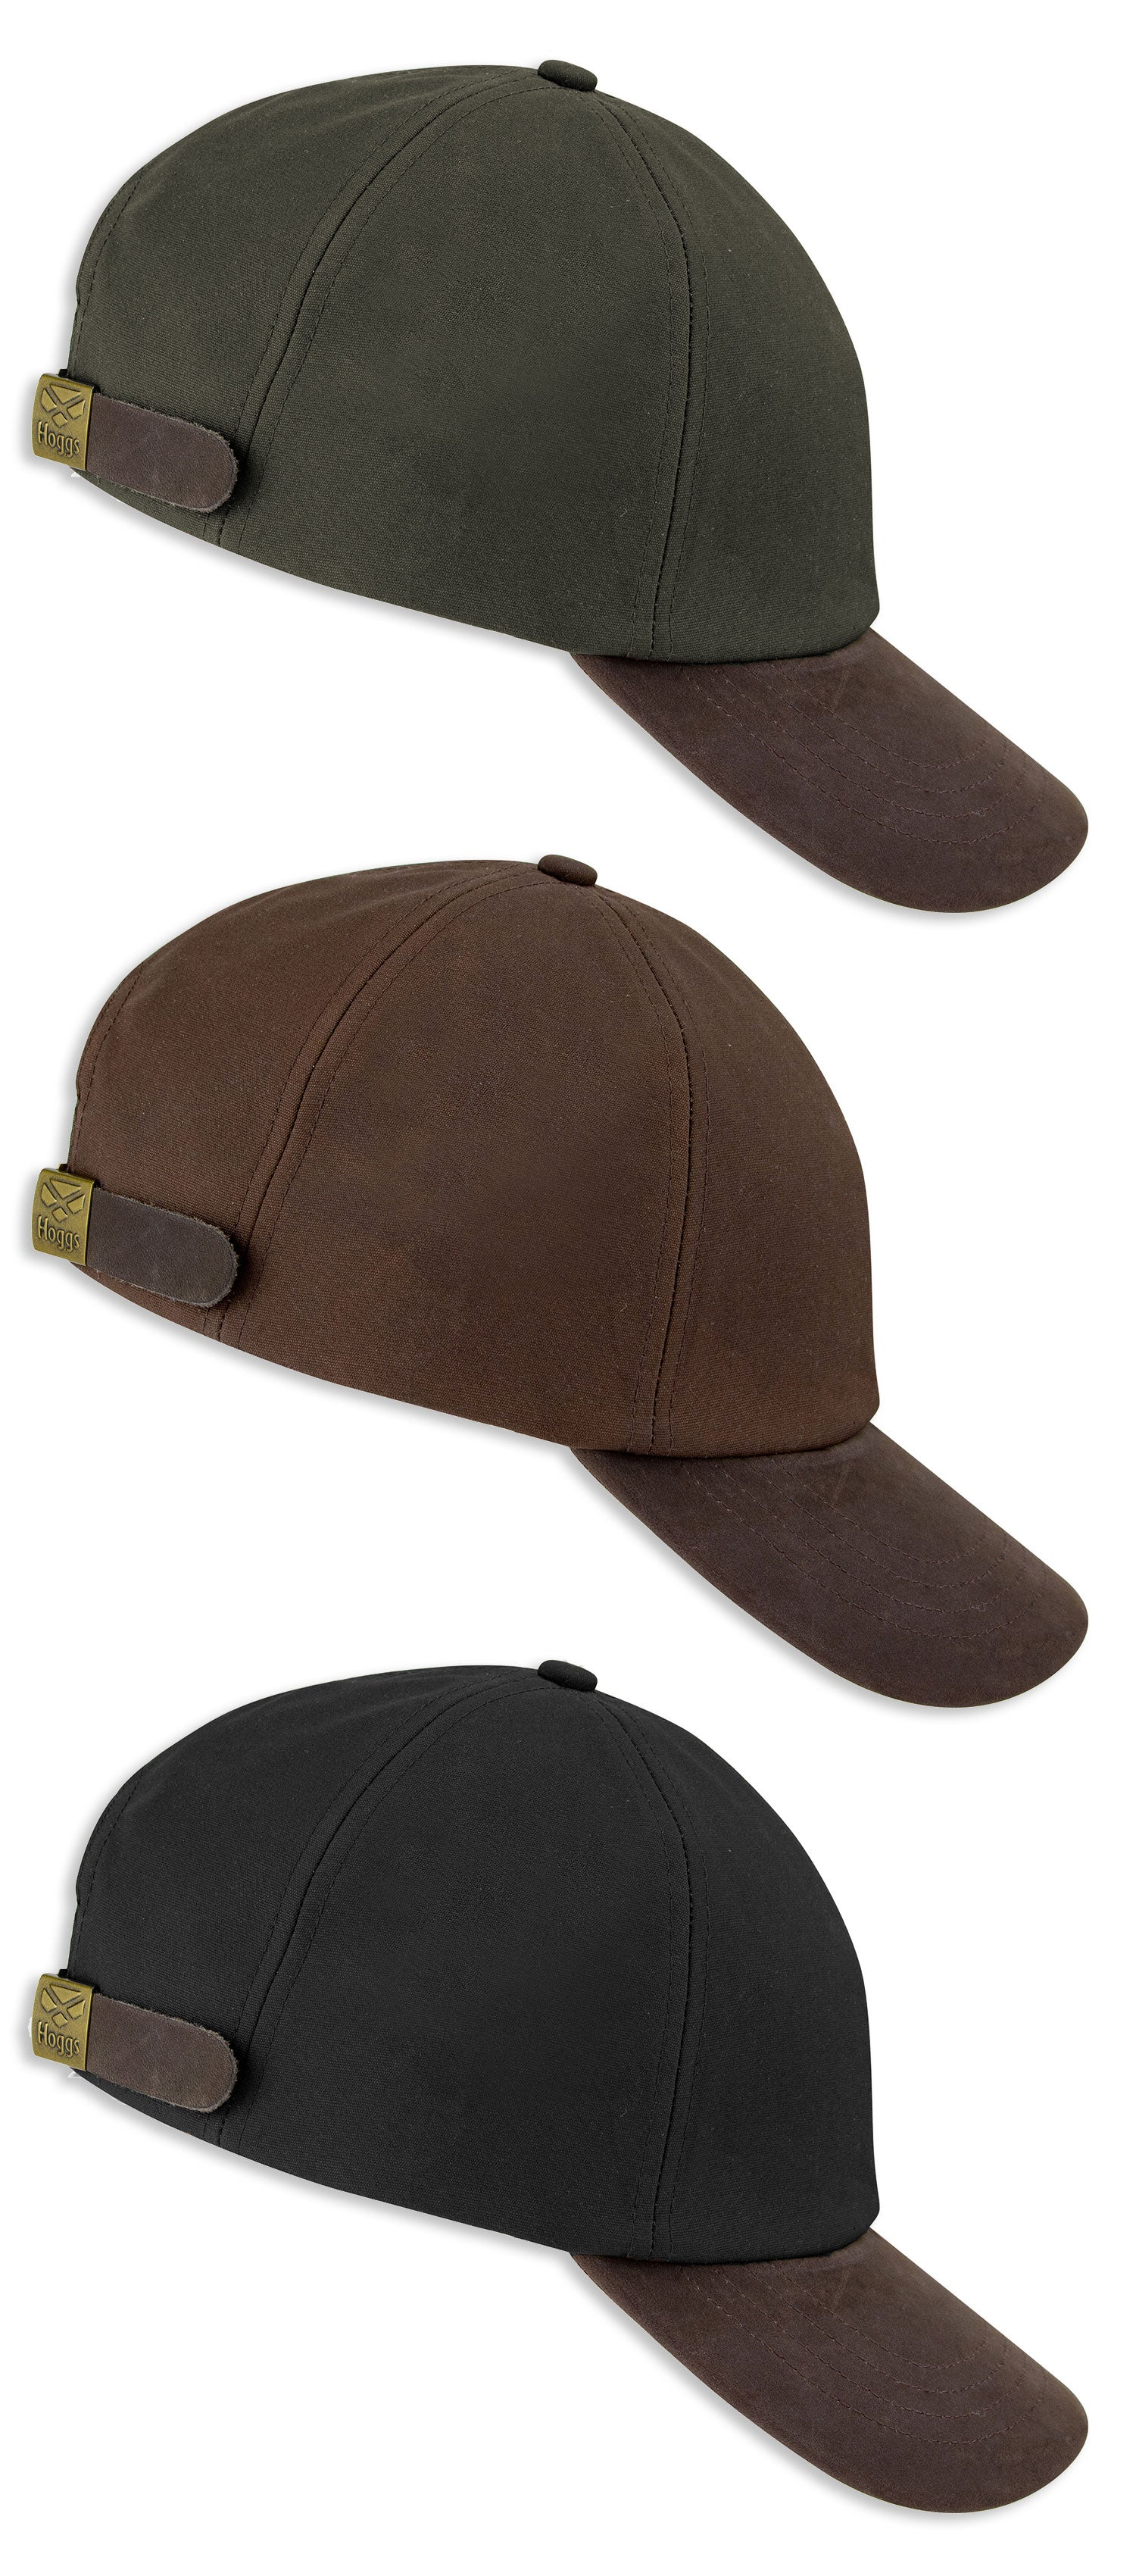 Hoggs of Fife Leather Peak Waxed Baseball Cap | Navy, Brown, Olive